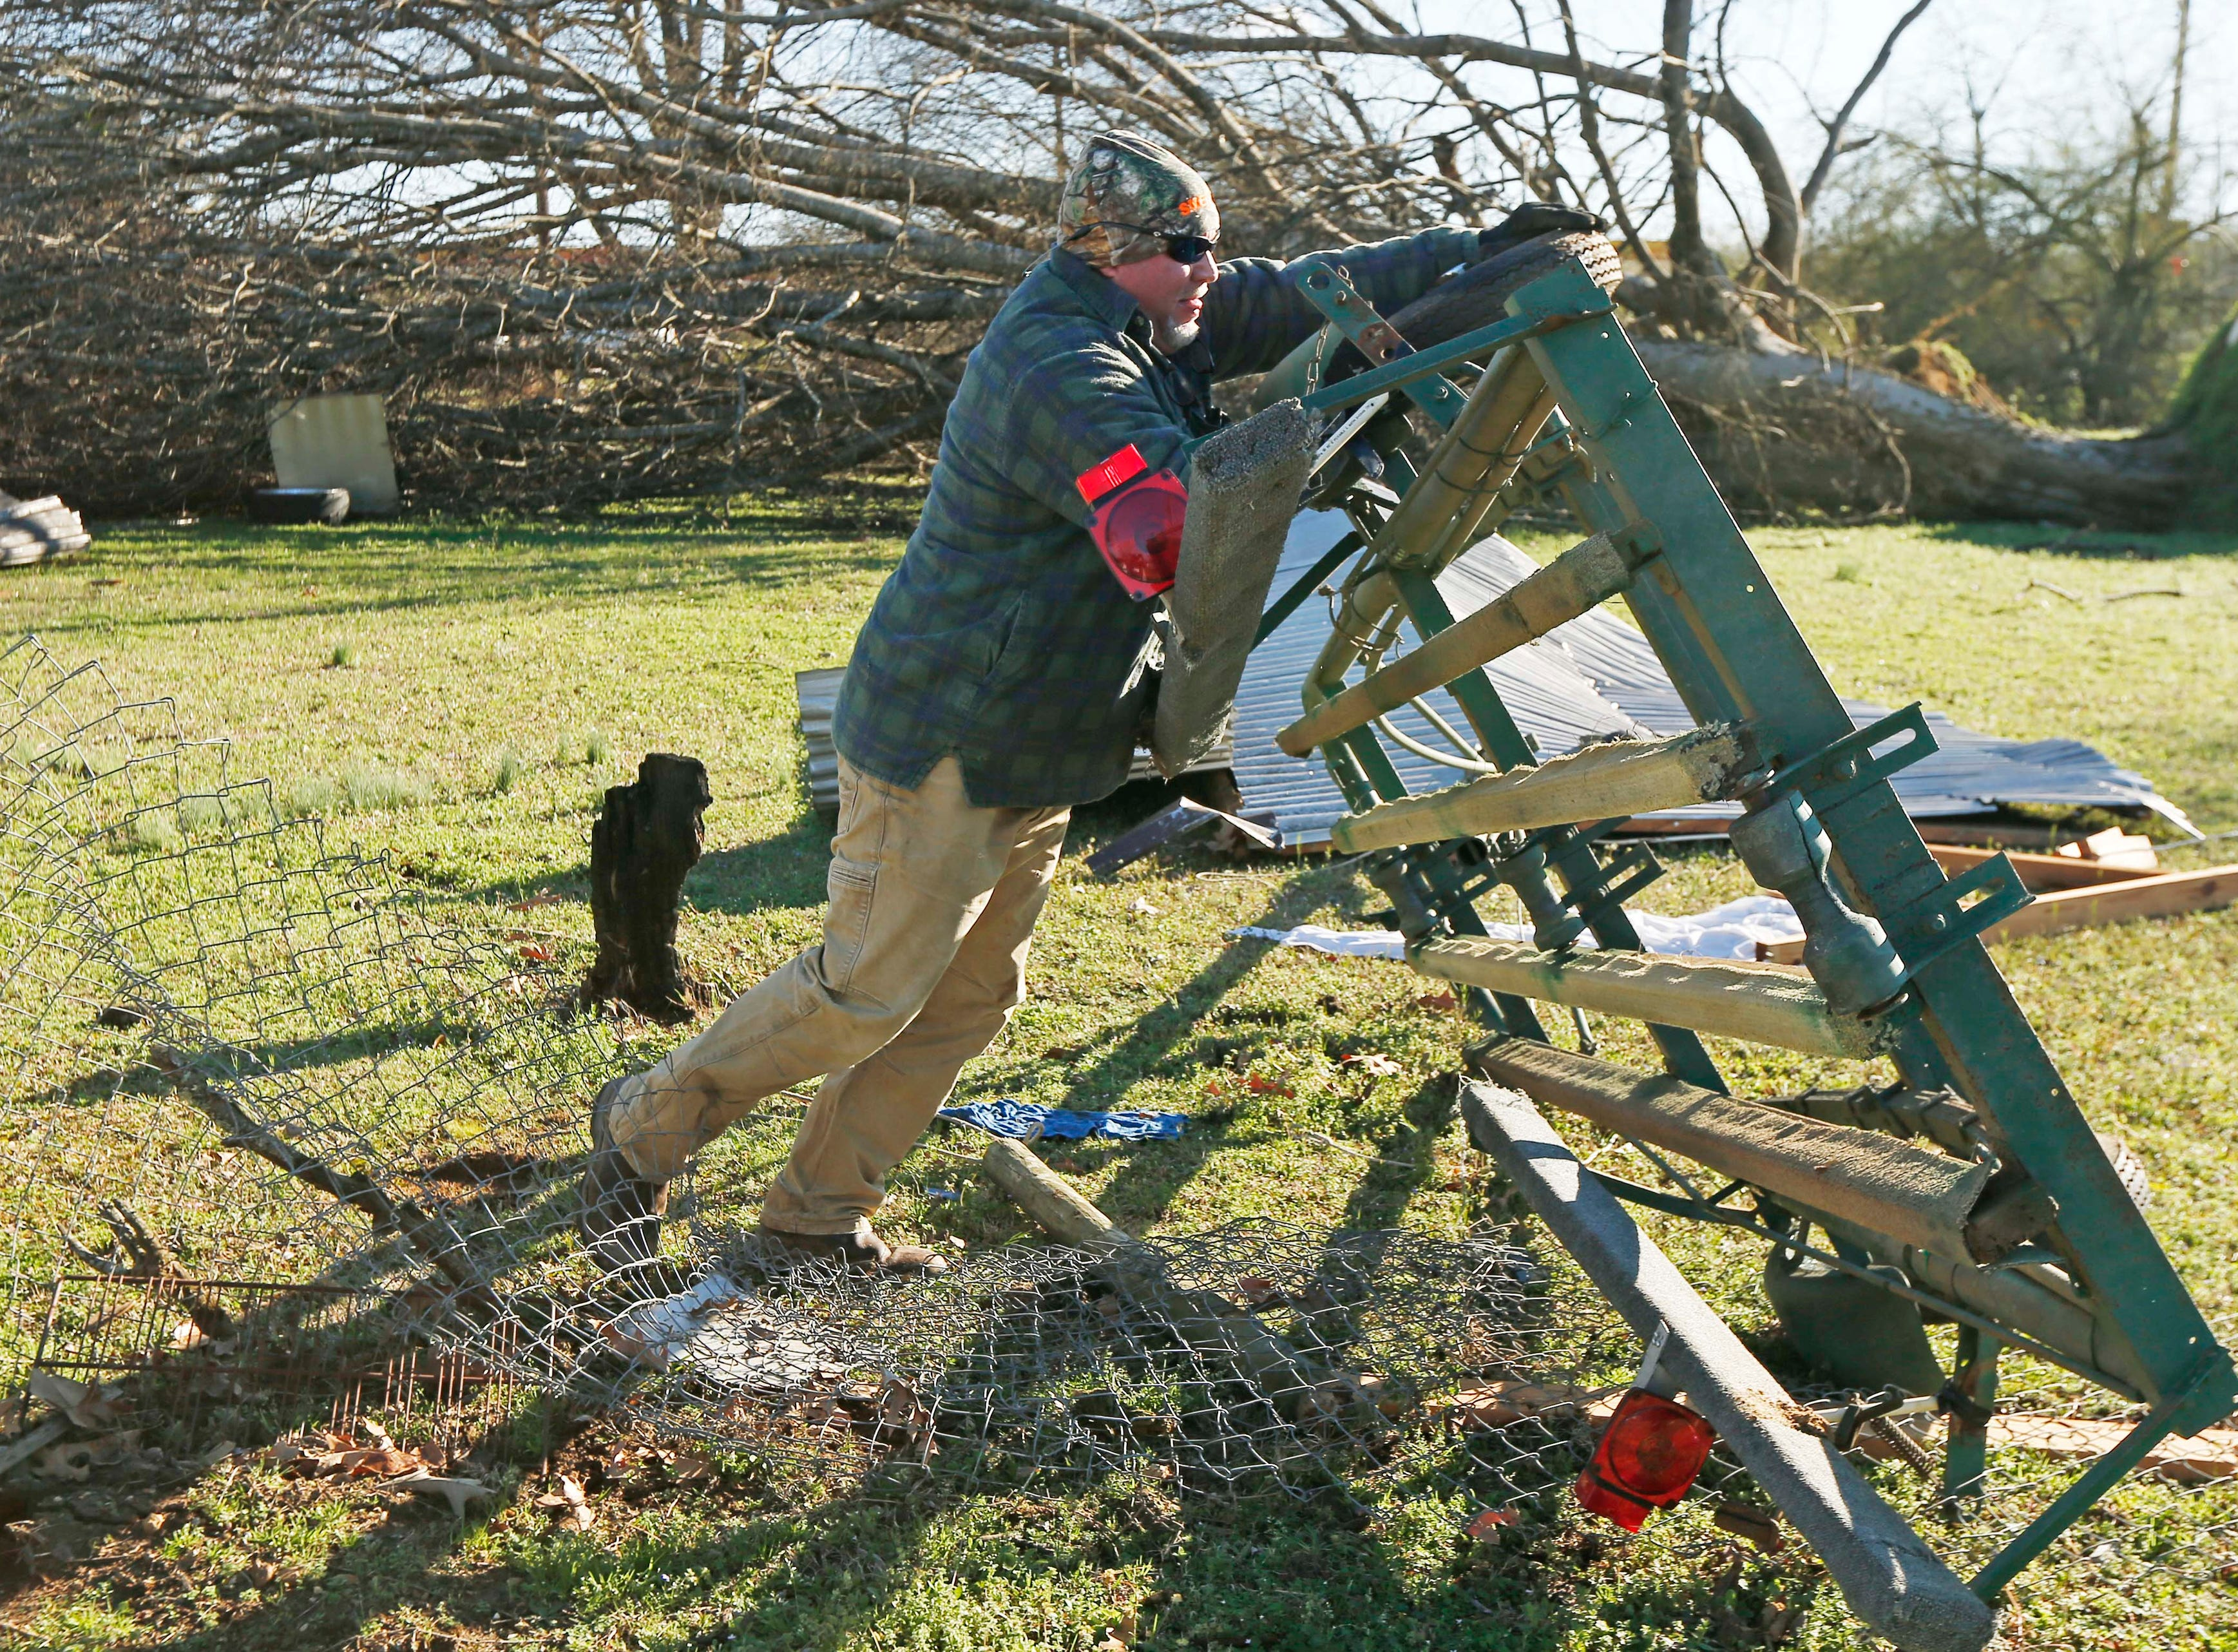 Jack Gordman flips over a boat trailer that was tossed several feef from his parent's home in Columbus, Miss., Sunday morning, Feb. 24, 2019, after Saturday's tornado that killed at least one person and shattered businesses and several homes. (AP Photo/Rogelio V. Solis)